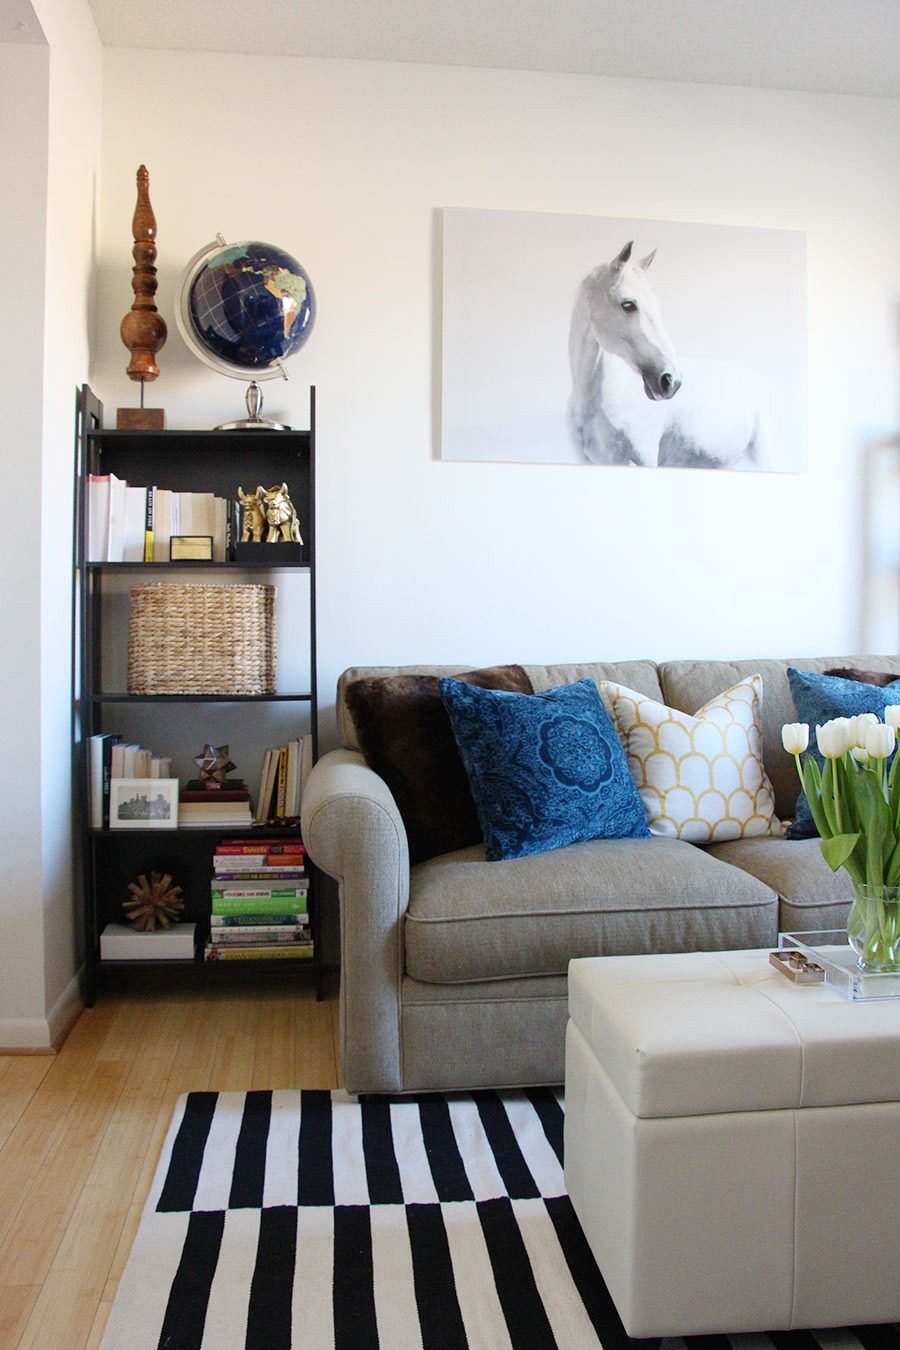 Interior design guest room studio splendor styling - Guest room ideas small space ...